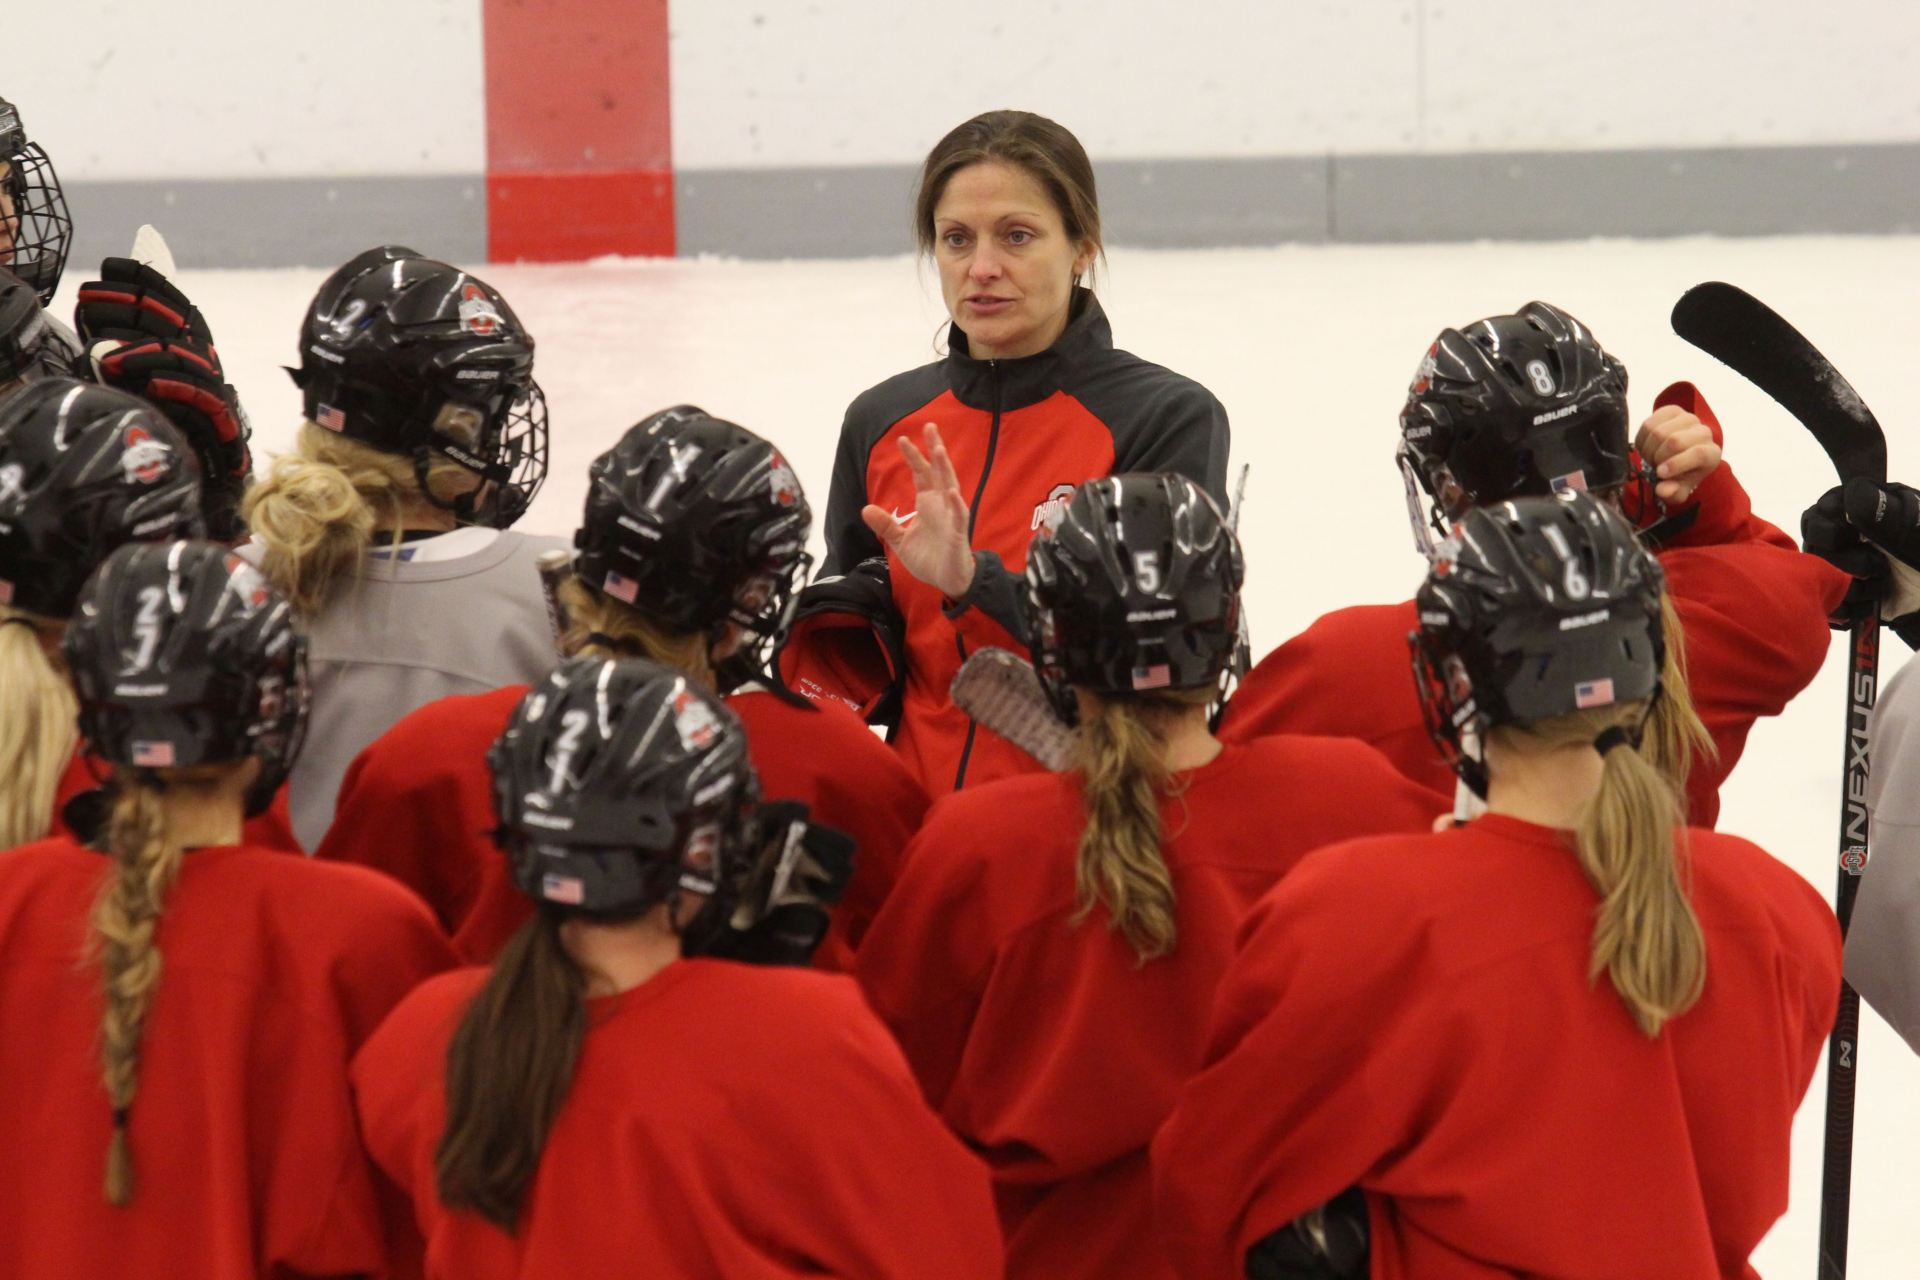 Nadine Muzerall Turns Troubled Ohio State Team Into Contender